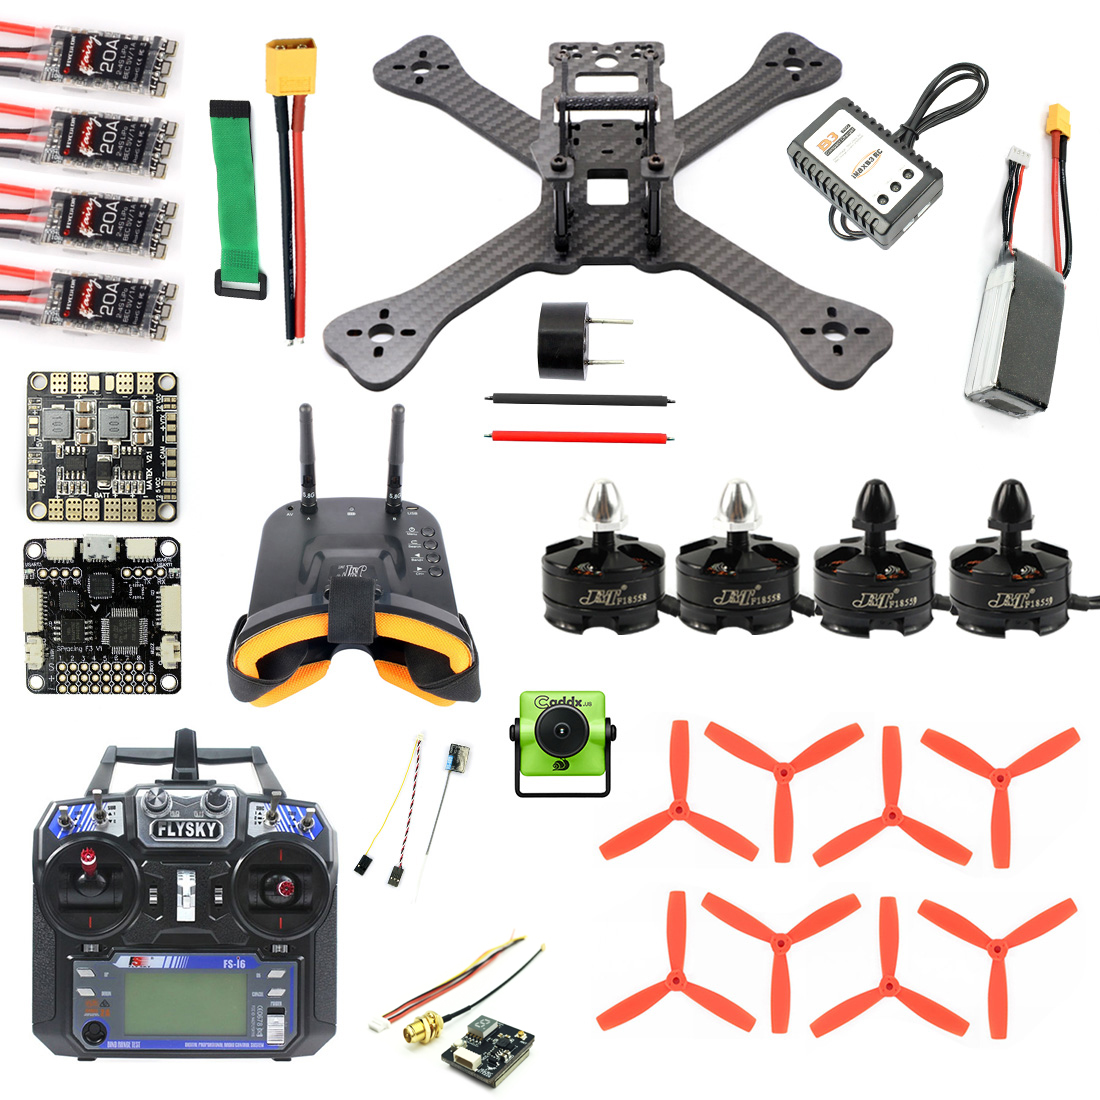 DIY TX5-210 210mm 2.4G RC <font><b>Racing</b></font> <font><b>Drone</b></font> Mini Quadcopter SP F3 Caddx Turbo S1 Night Version Camera 5.8G VTX <font><b>FPV</b></font> Monitor Goggles image